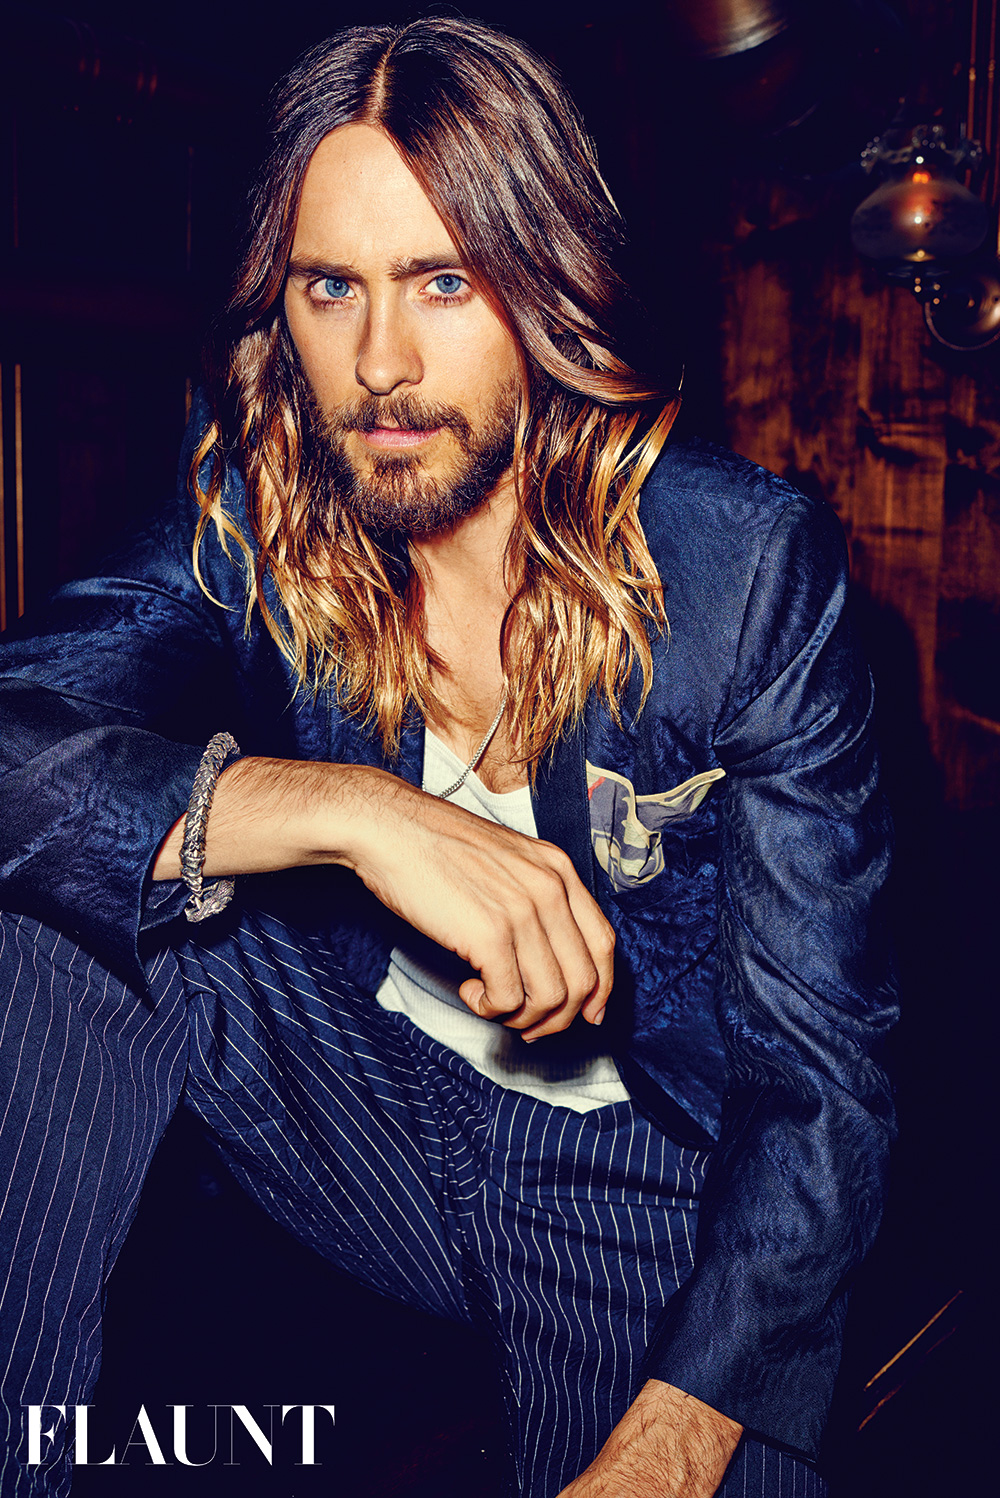 Jared Leto For Nylon Guys: Jared Leto Is Sexy Wearing William Henry On The Cover Of